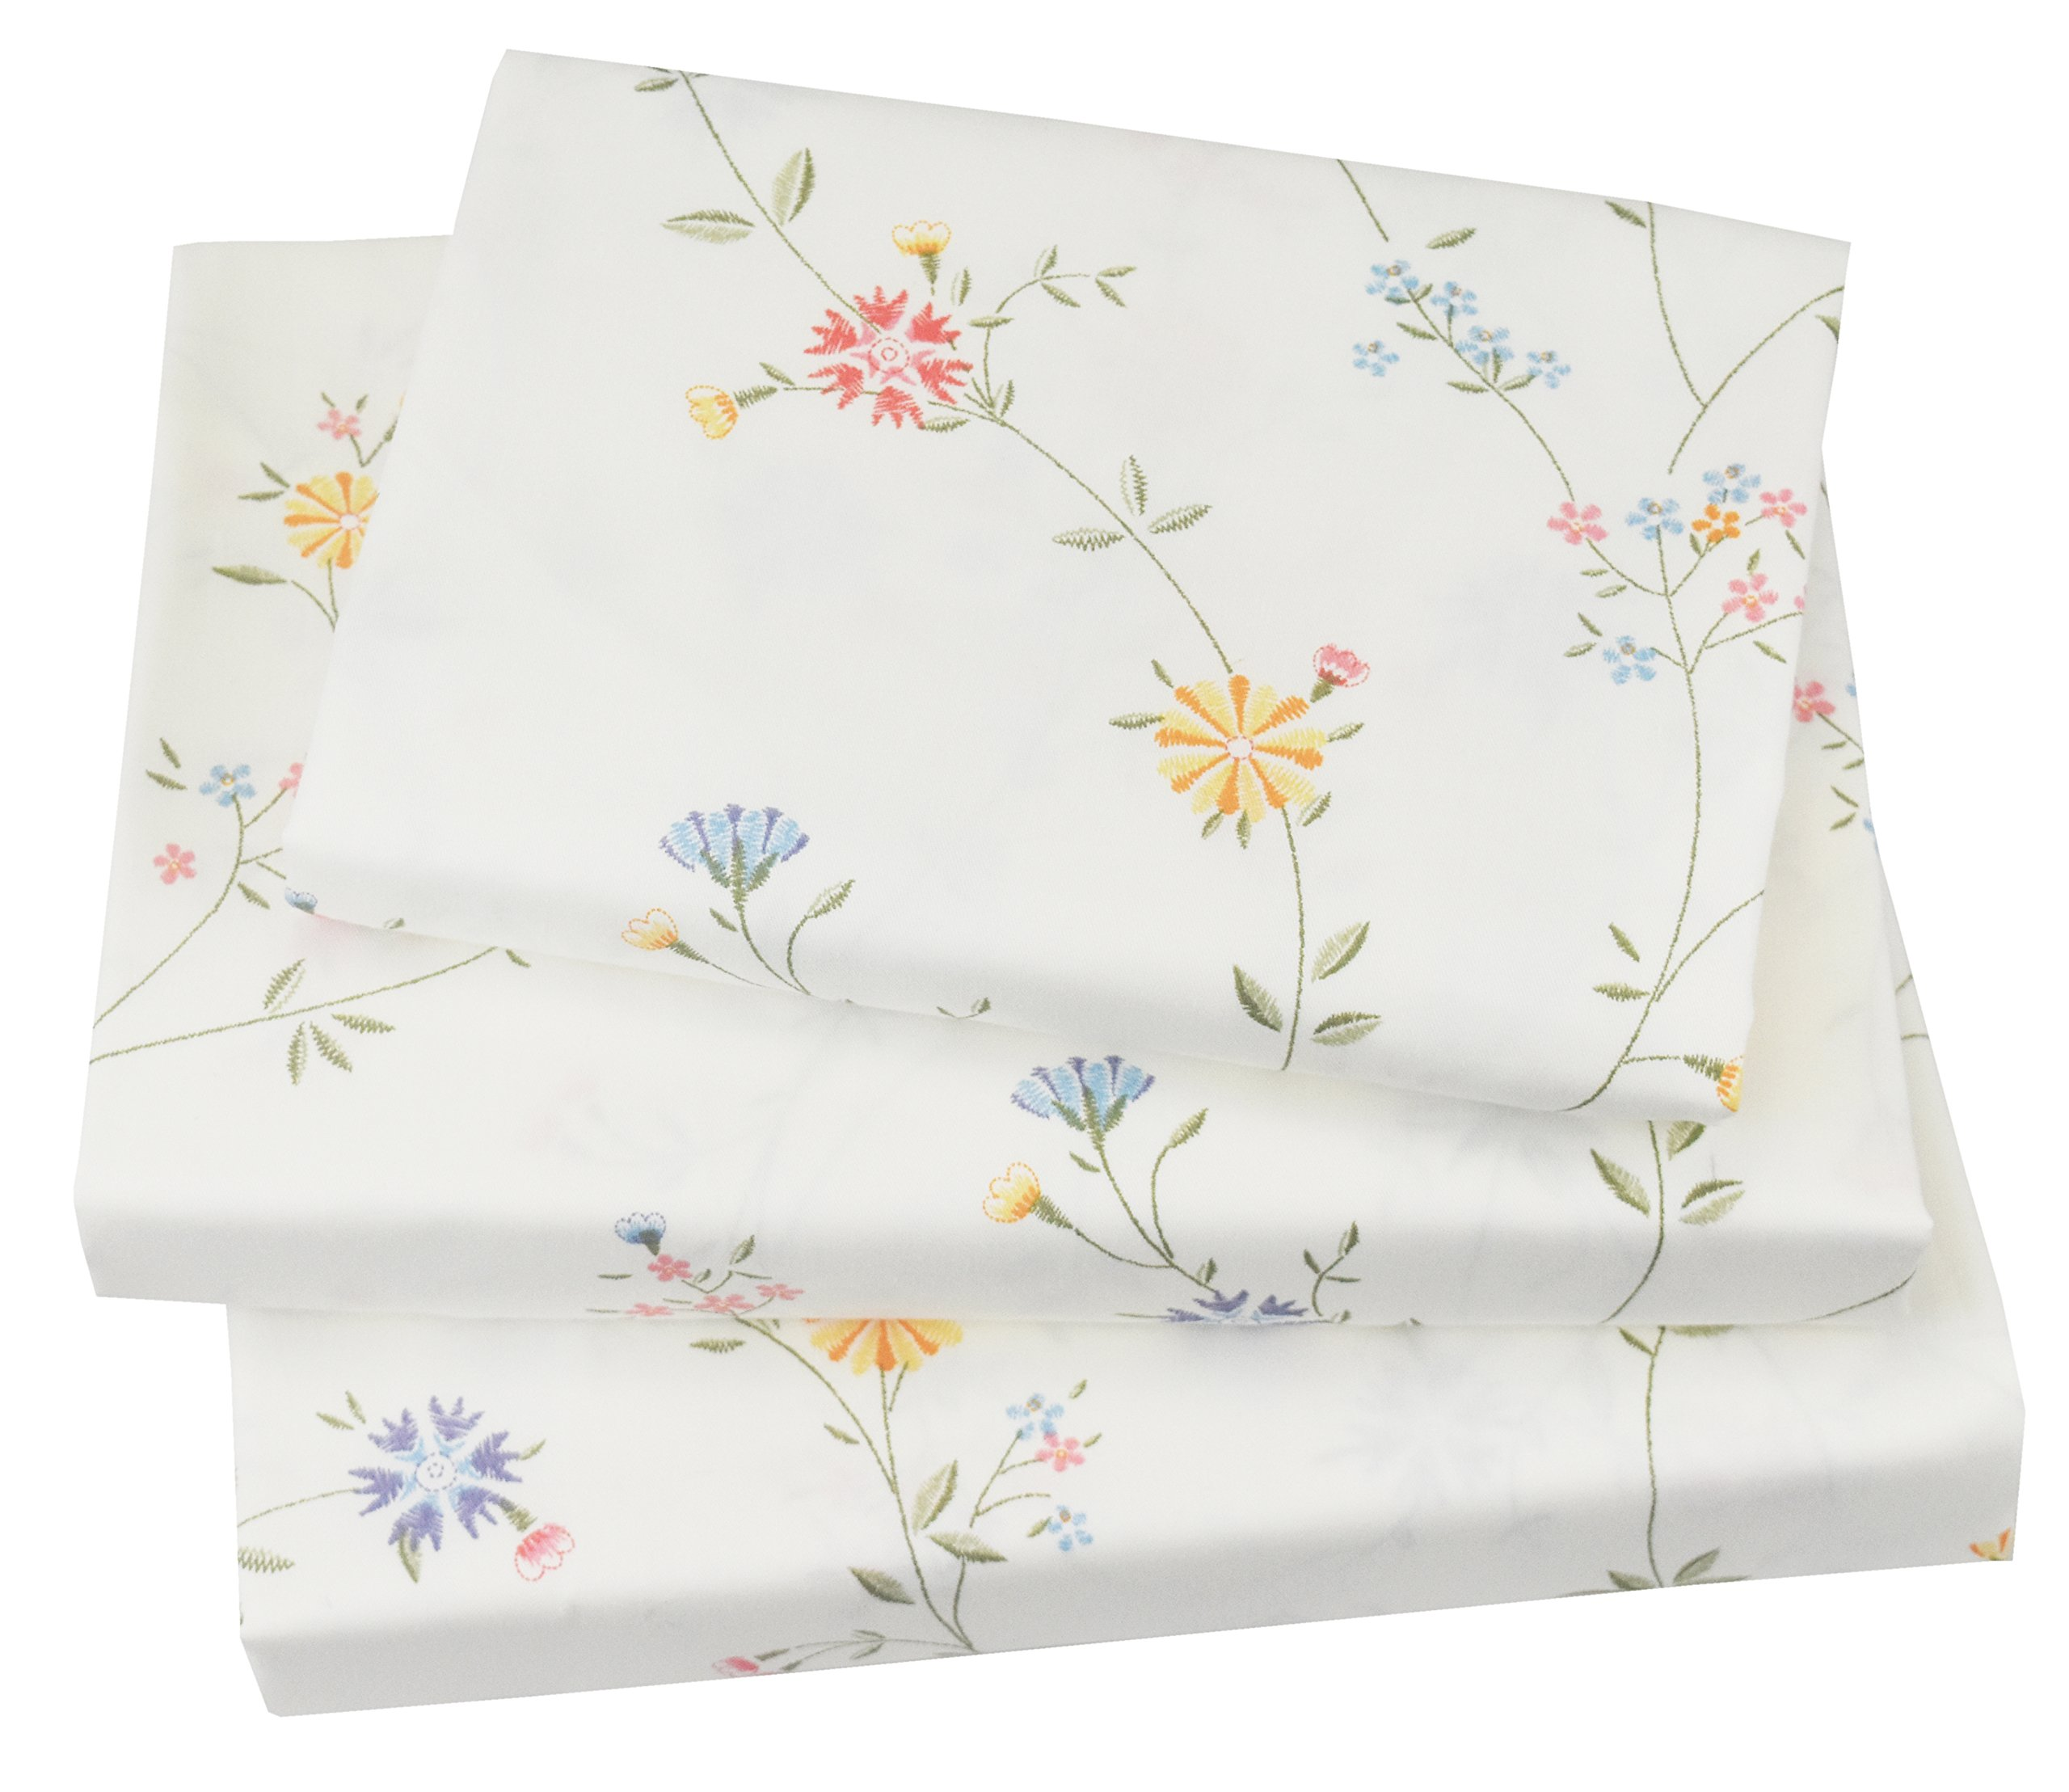 J-pinno Cute Vine & Flowers Twin Sheet Set for Kids Girl Children,100% Cotton, Flat Sheet + Fitted Sheet + Pillowcase Bedding Set (flower4)